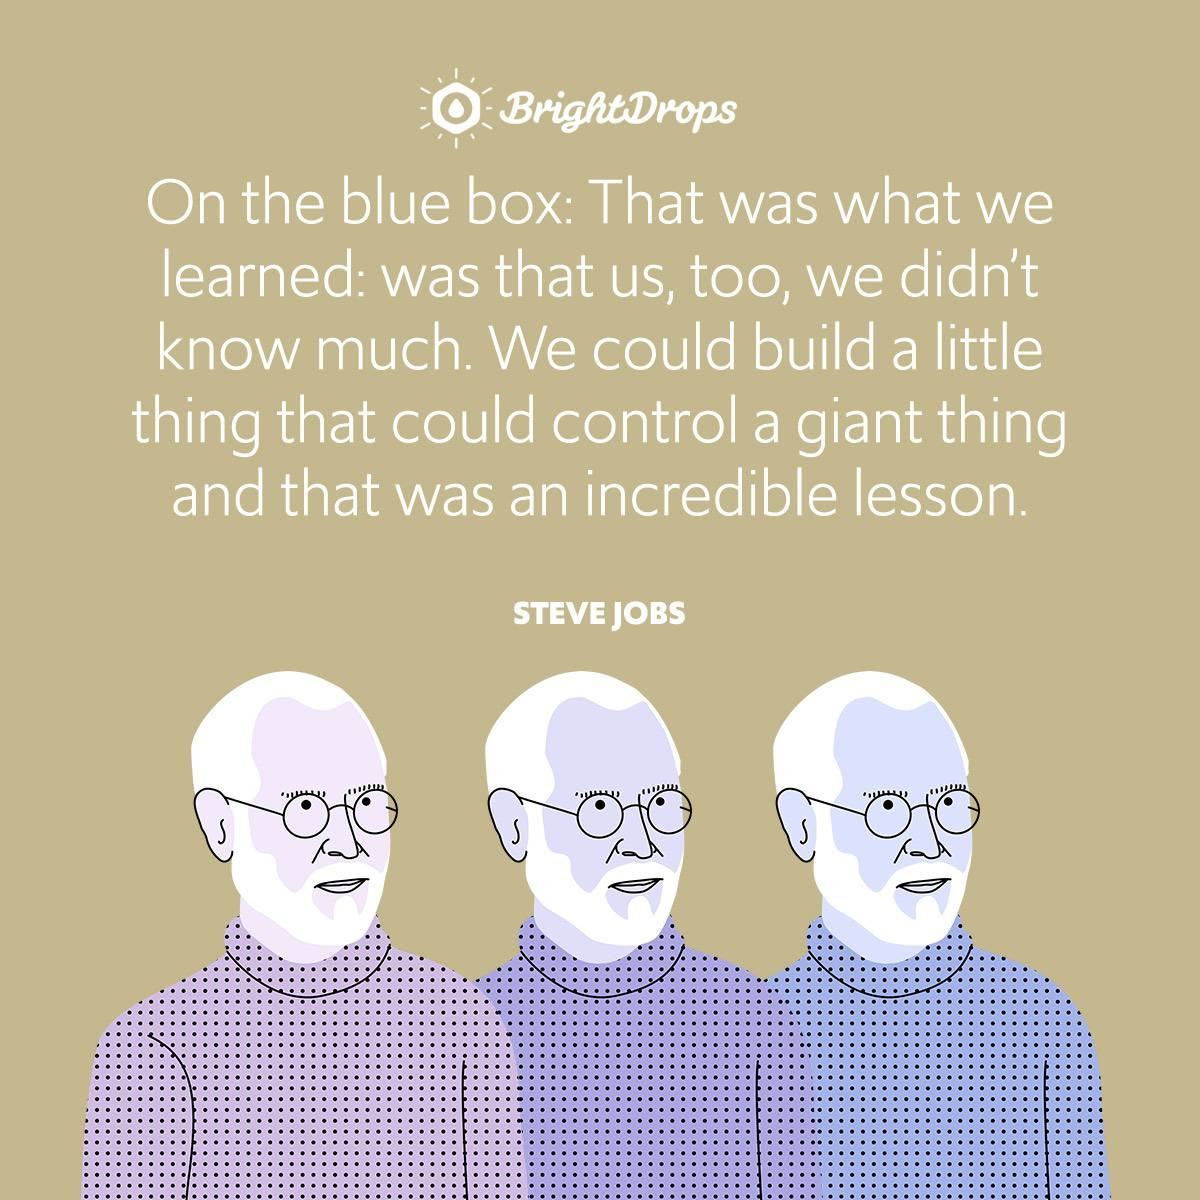 On the blue box: That was what we learned: was that us, too, we didn't know much. We could build a little thing that could control a giant thing and that was an incredible lesson.